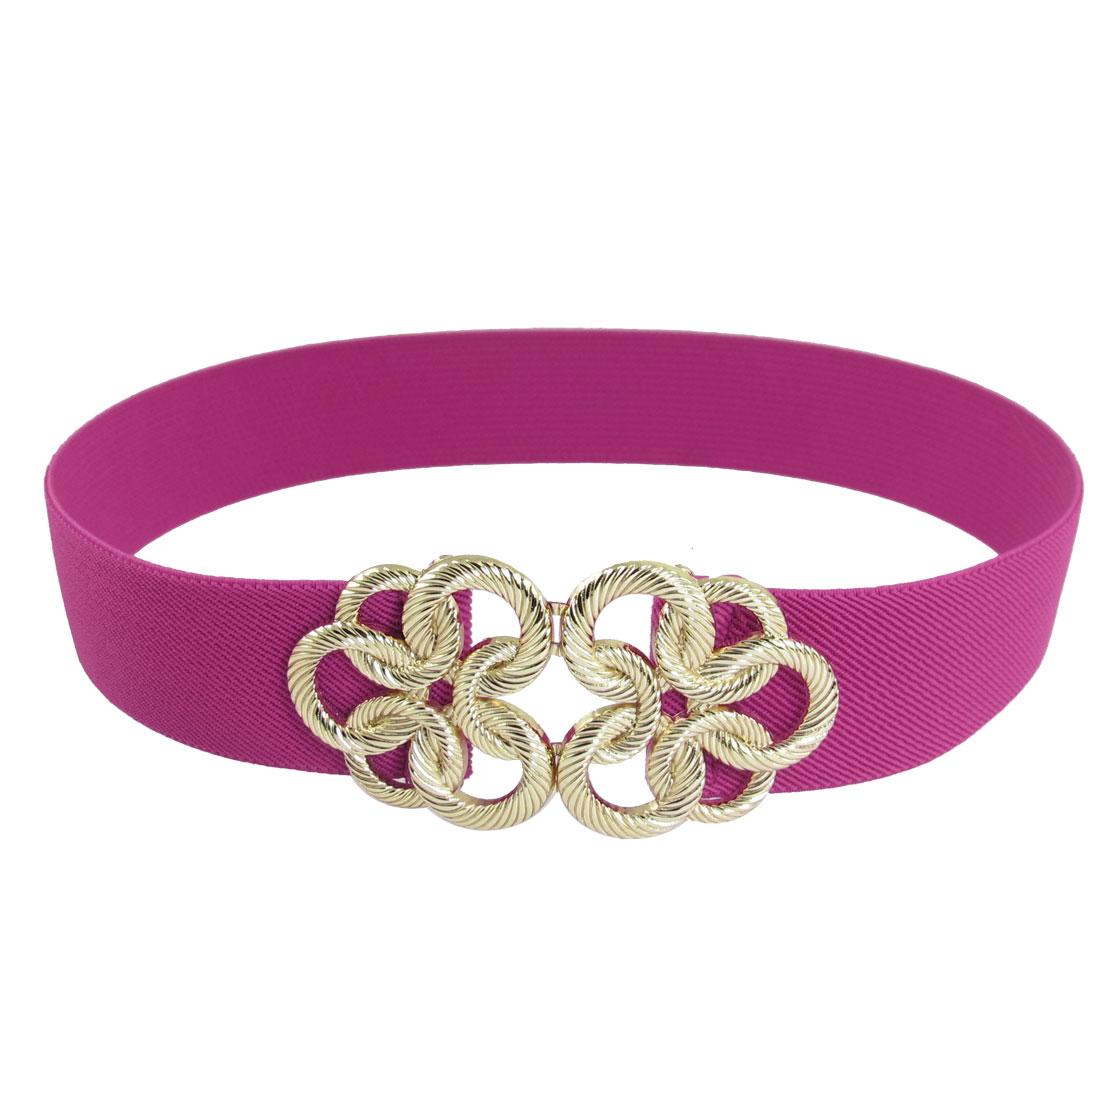 Metal Floral Interlocking Buckle Stretch Belt Band Fuchsia for Ladies Woman